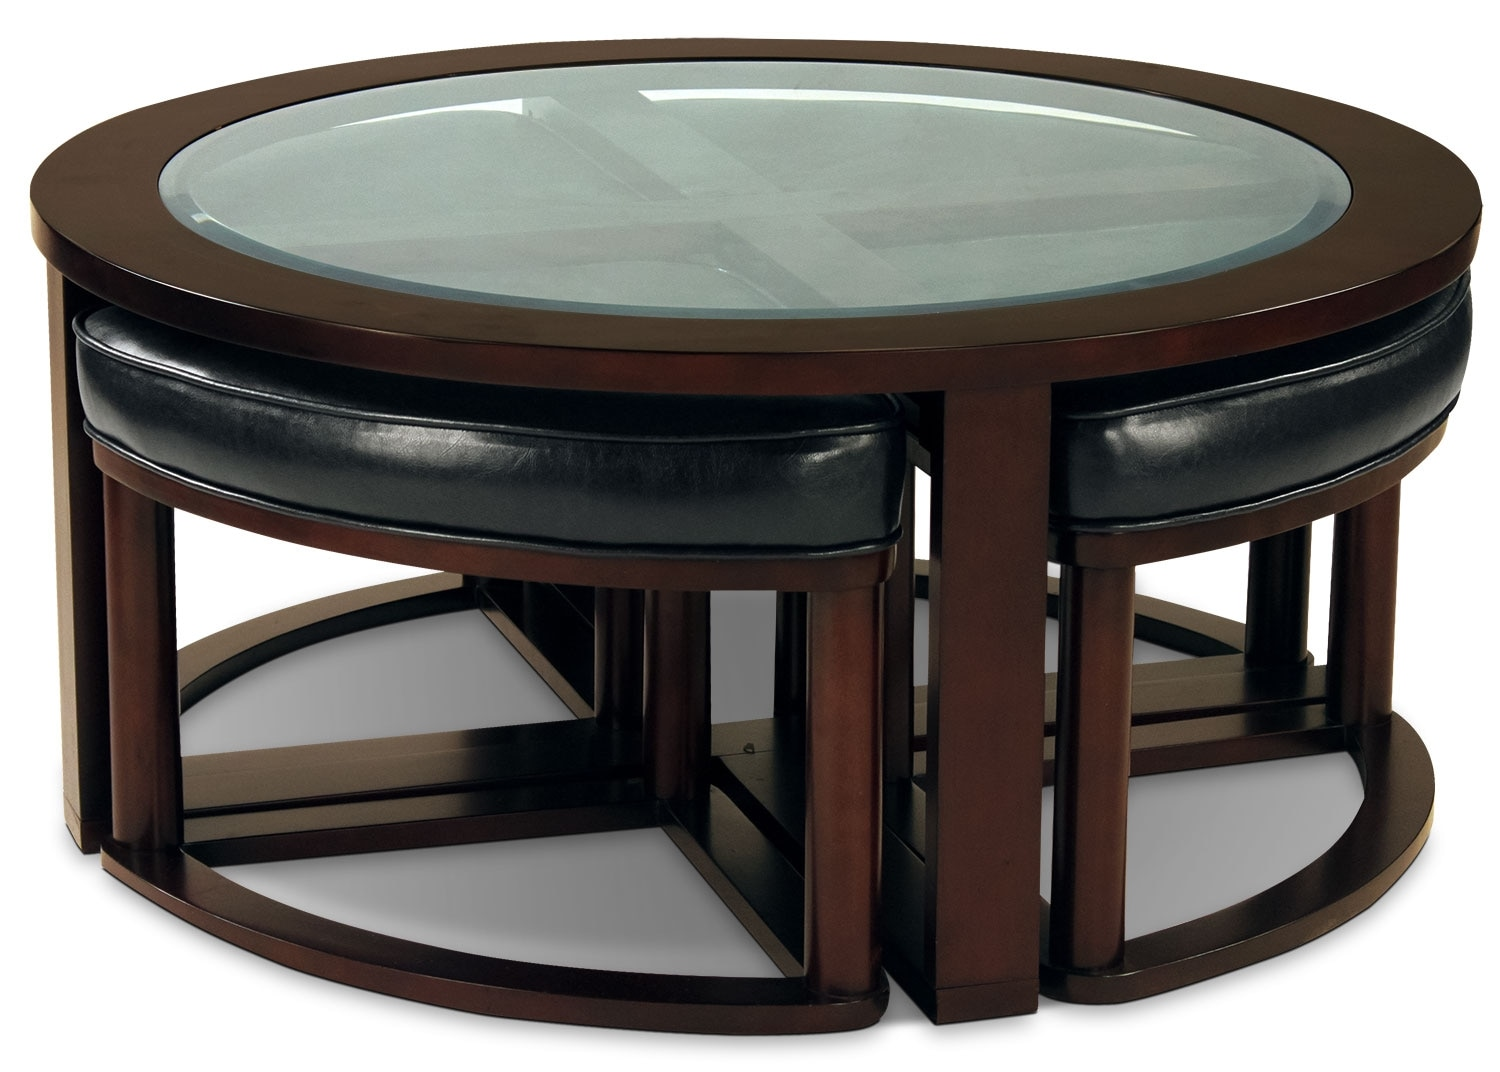 Sierra Coffee Table With Four Ottoman Wedge Stools The Brick